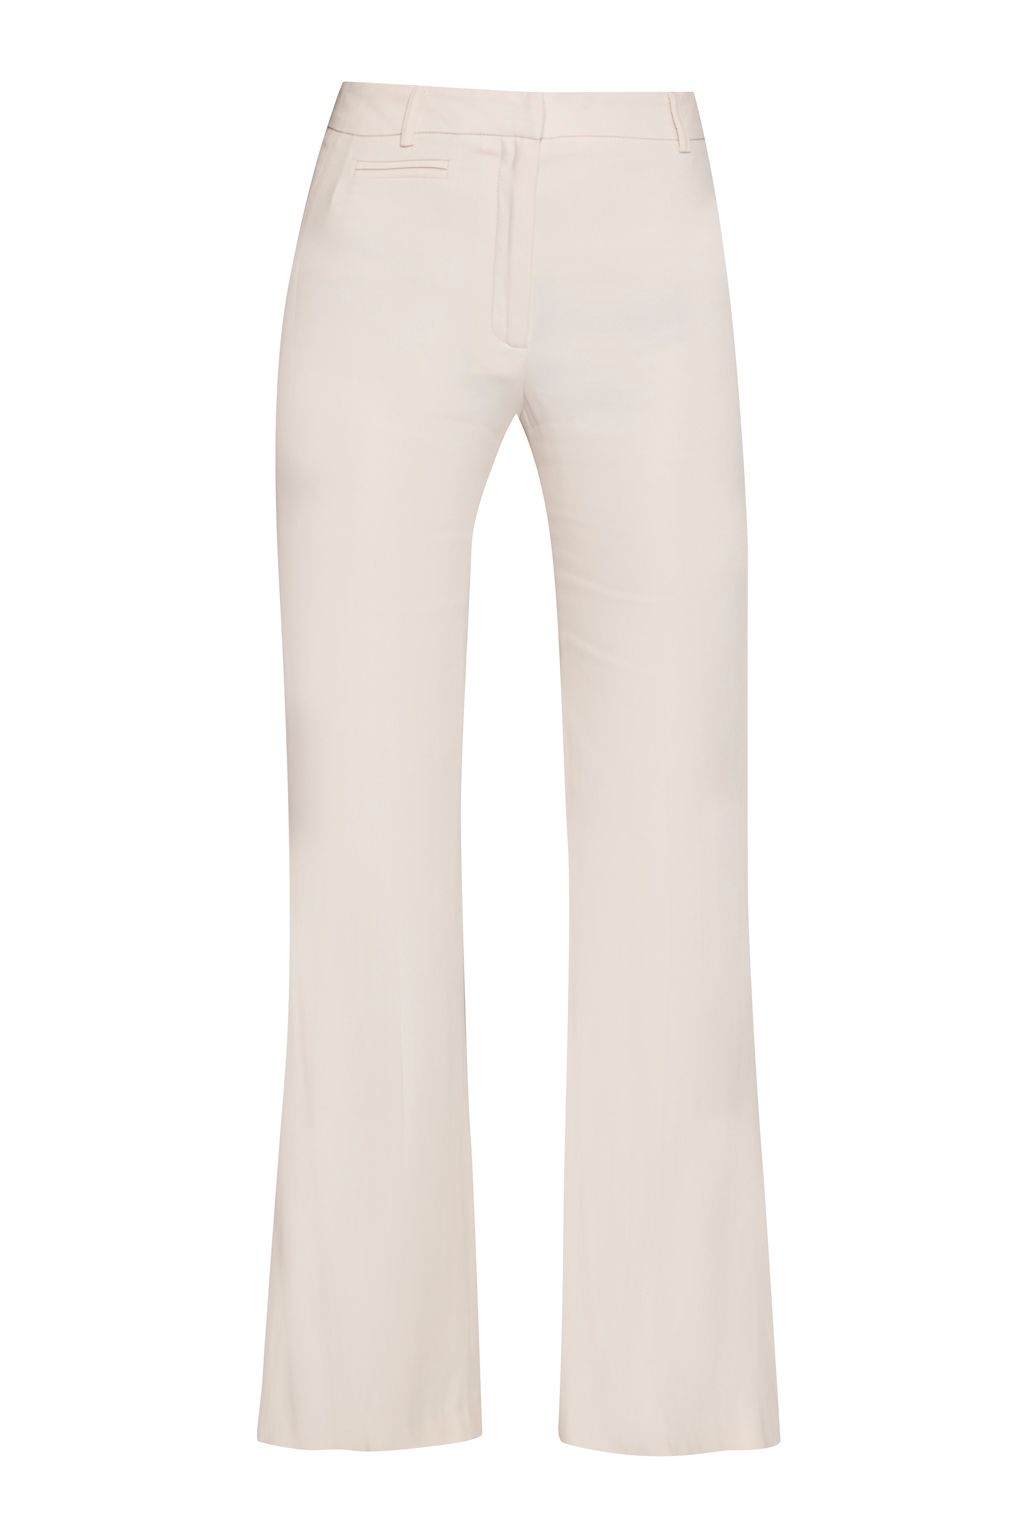 Great Plains Megan Crepe High Waist Trousers, Pink